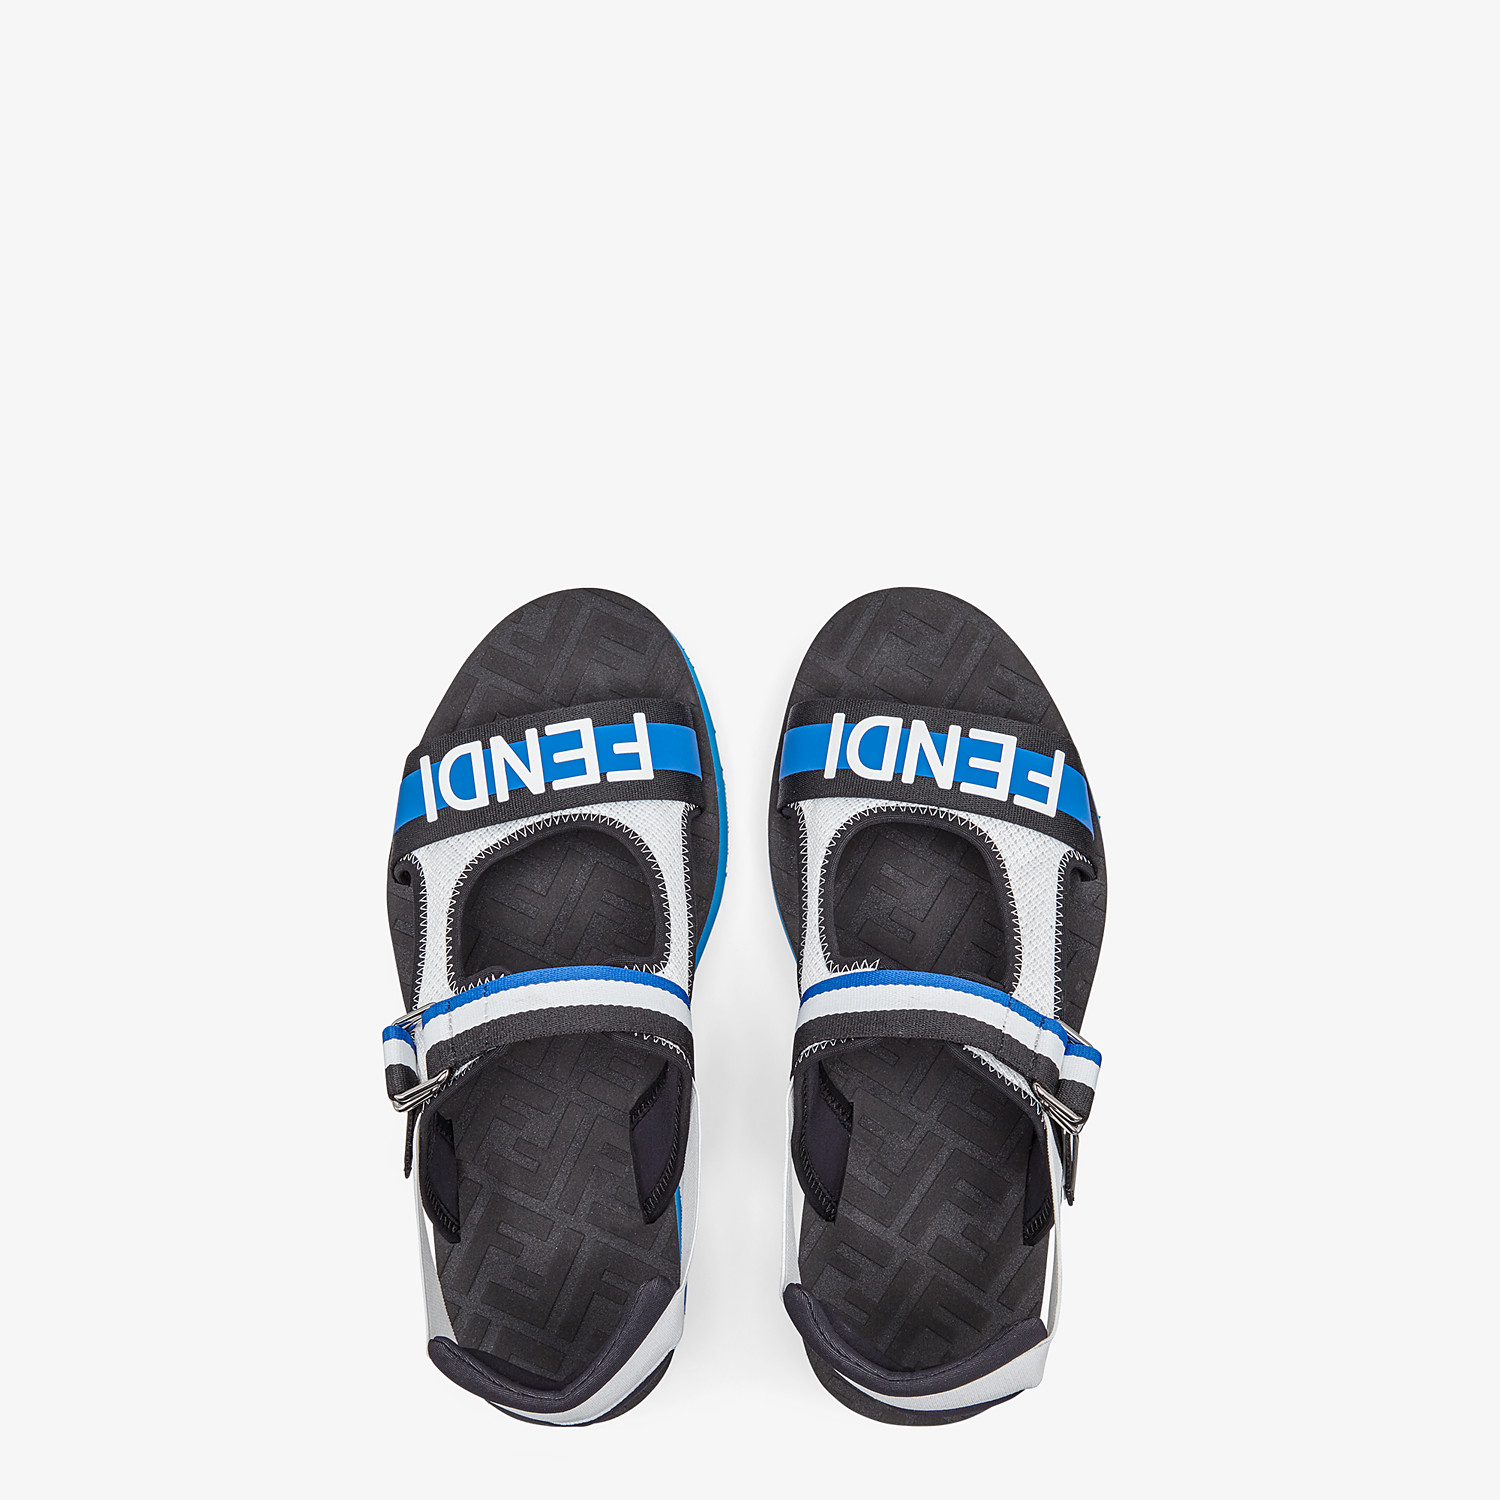 FENDI SANDALS - Multicolour tech fabric sandals - view 4 detail